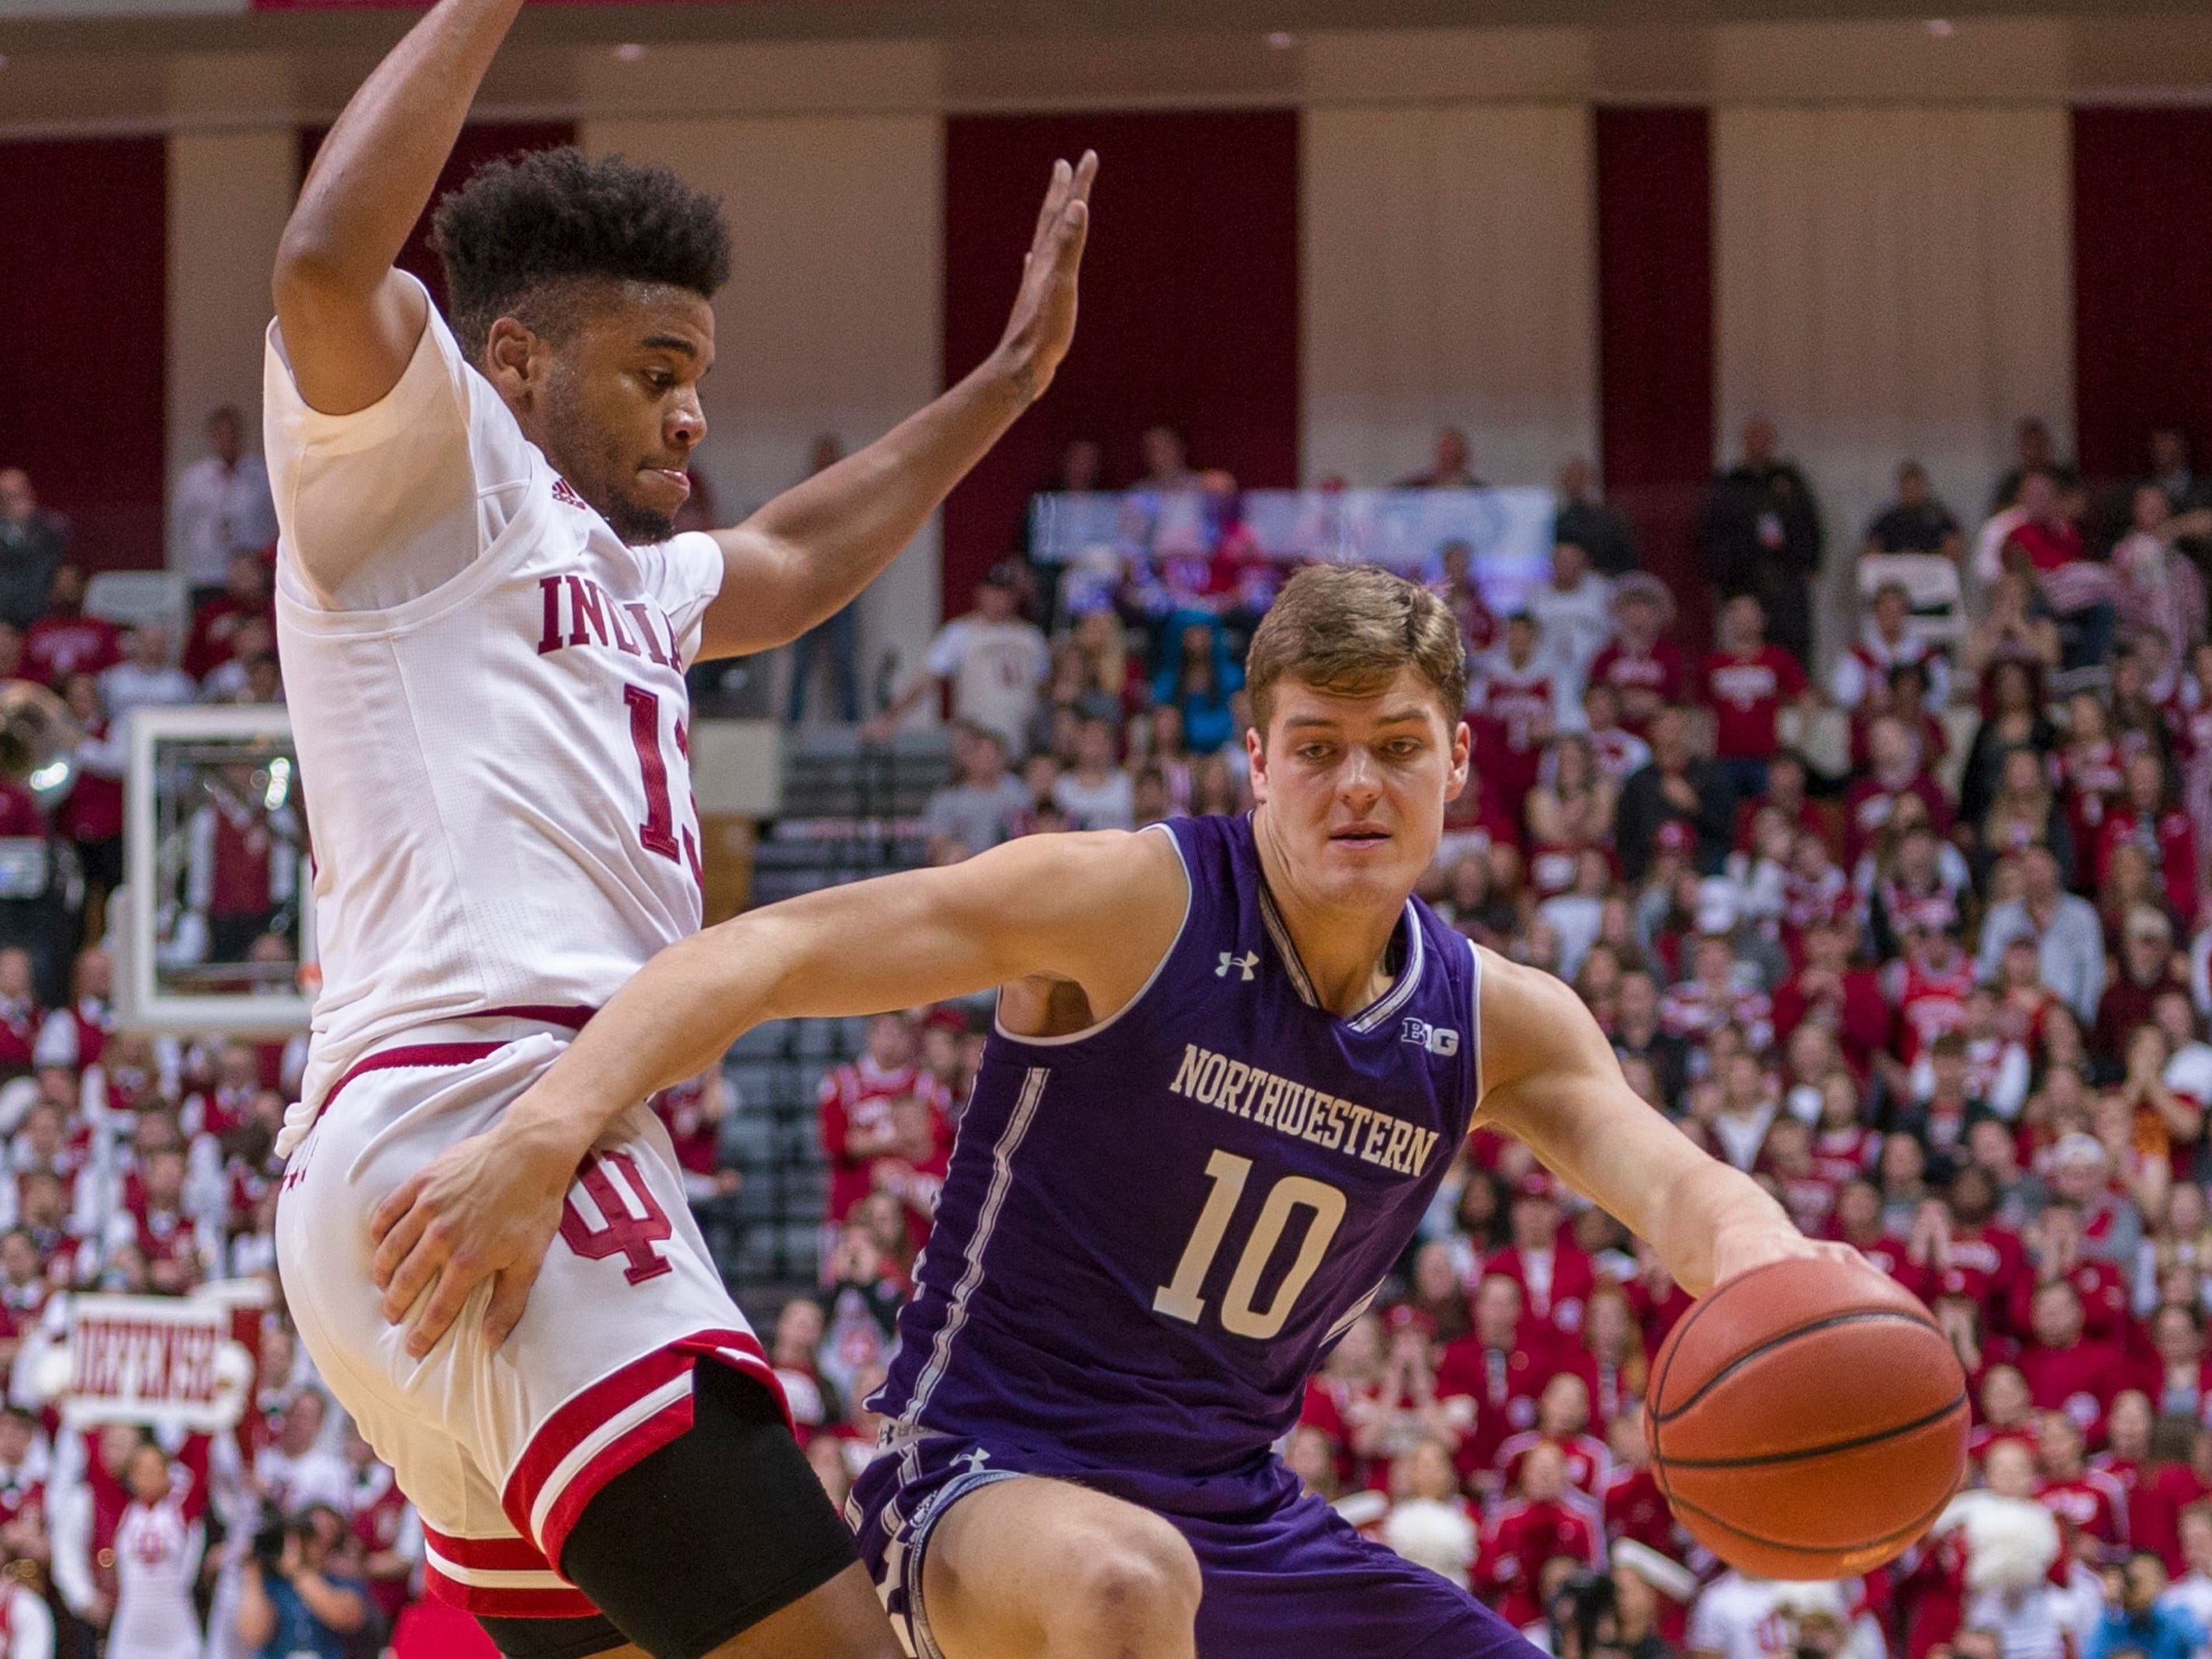 Northwestern forward Miller Kopp (10) makes a move around the defense of Indiana forward Juwan Morgan (13) during the first half of an NCAA college basketball game Saturday, Dec. 1, 2018, in Bloomington, Ind.